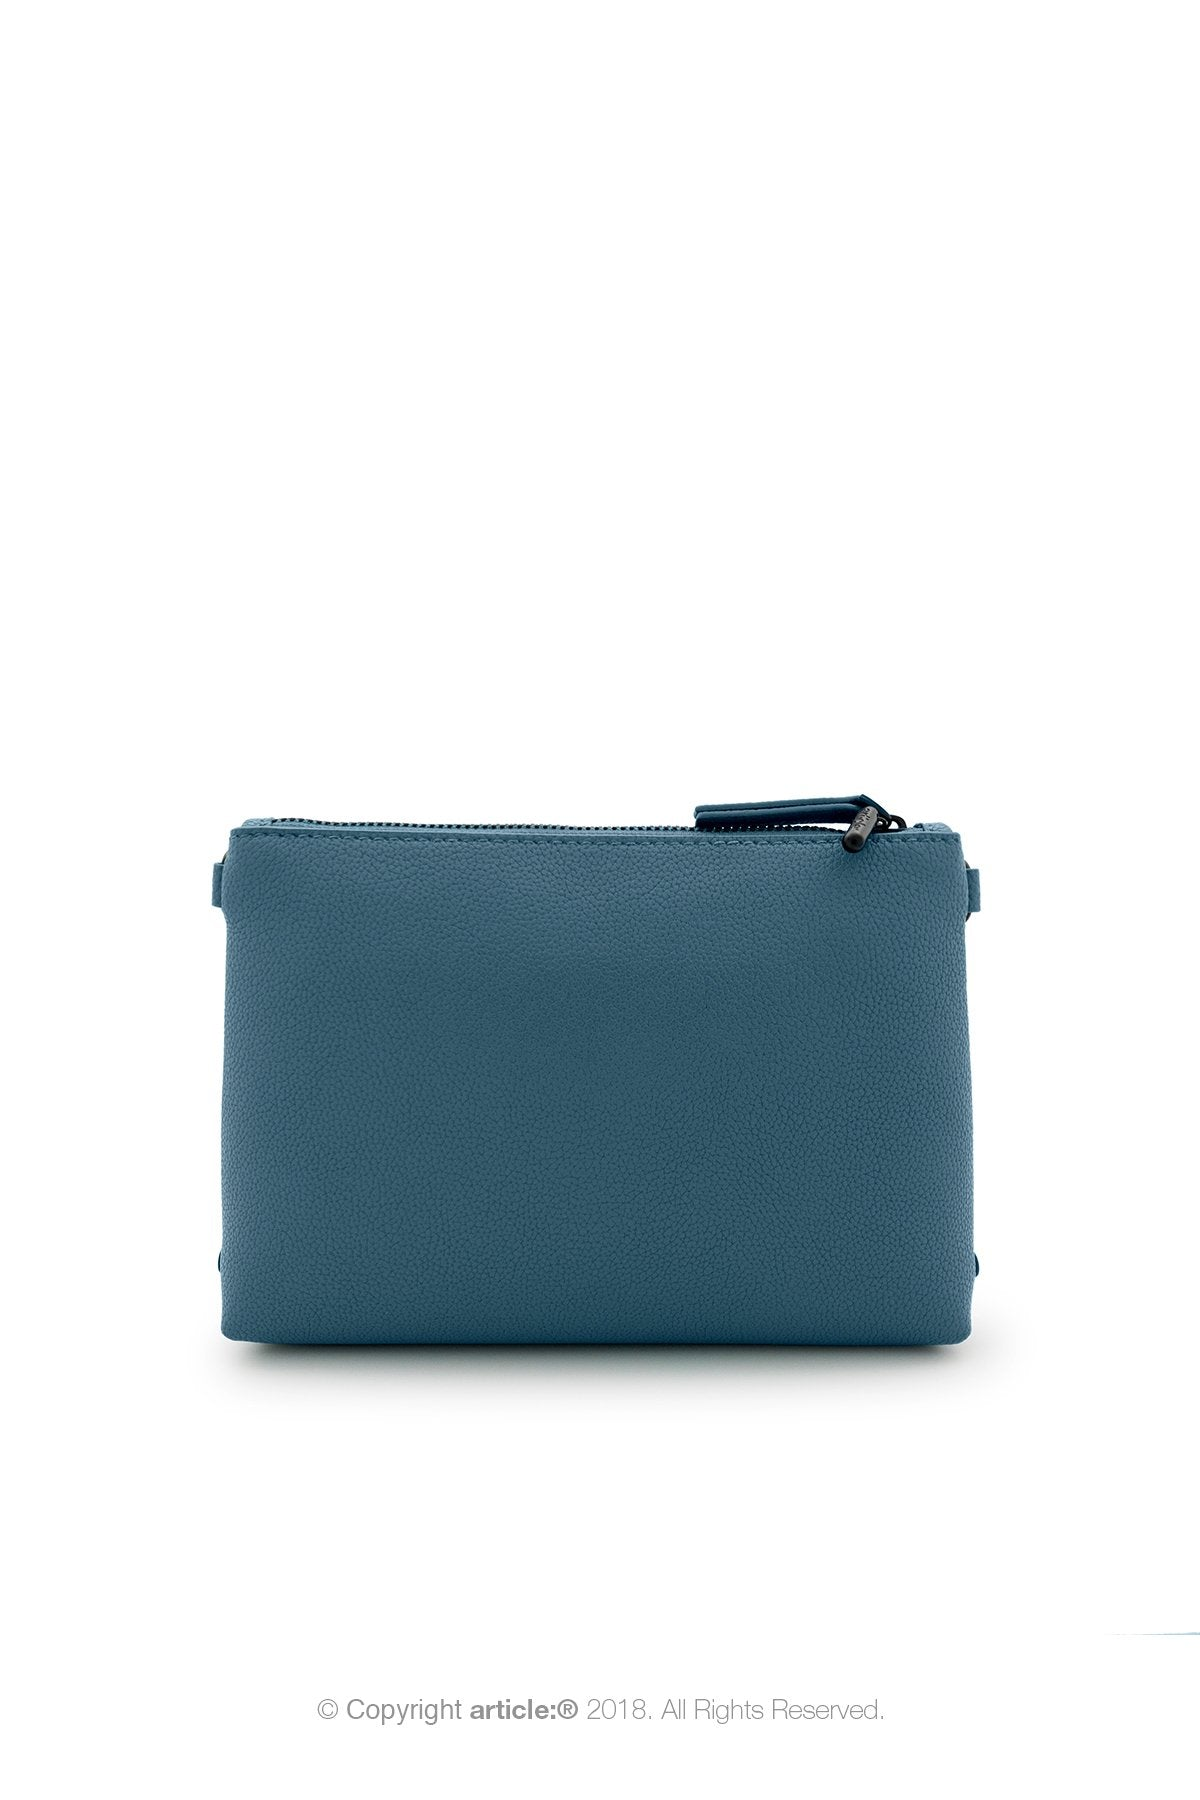 article: #007 Pochette Gusset - Prussian